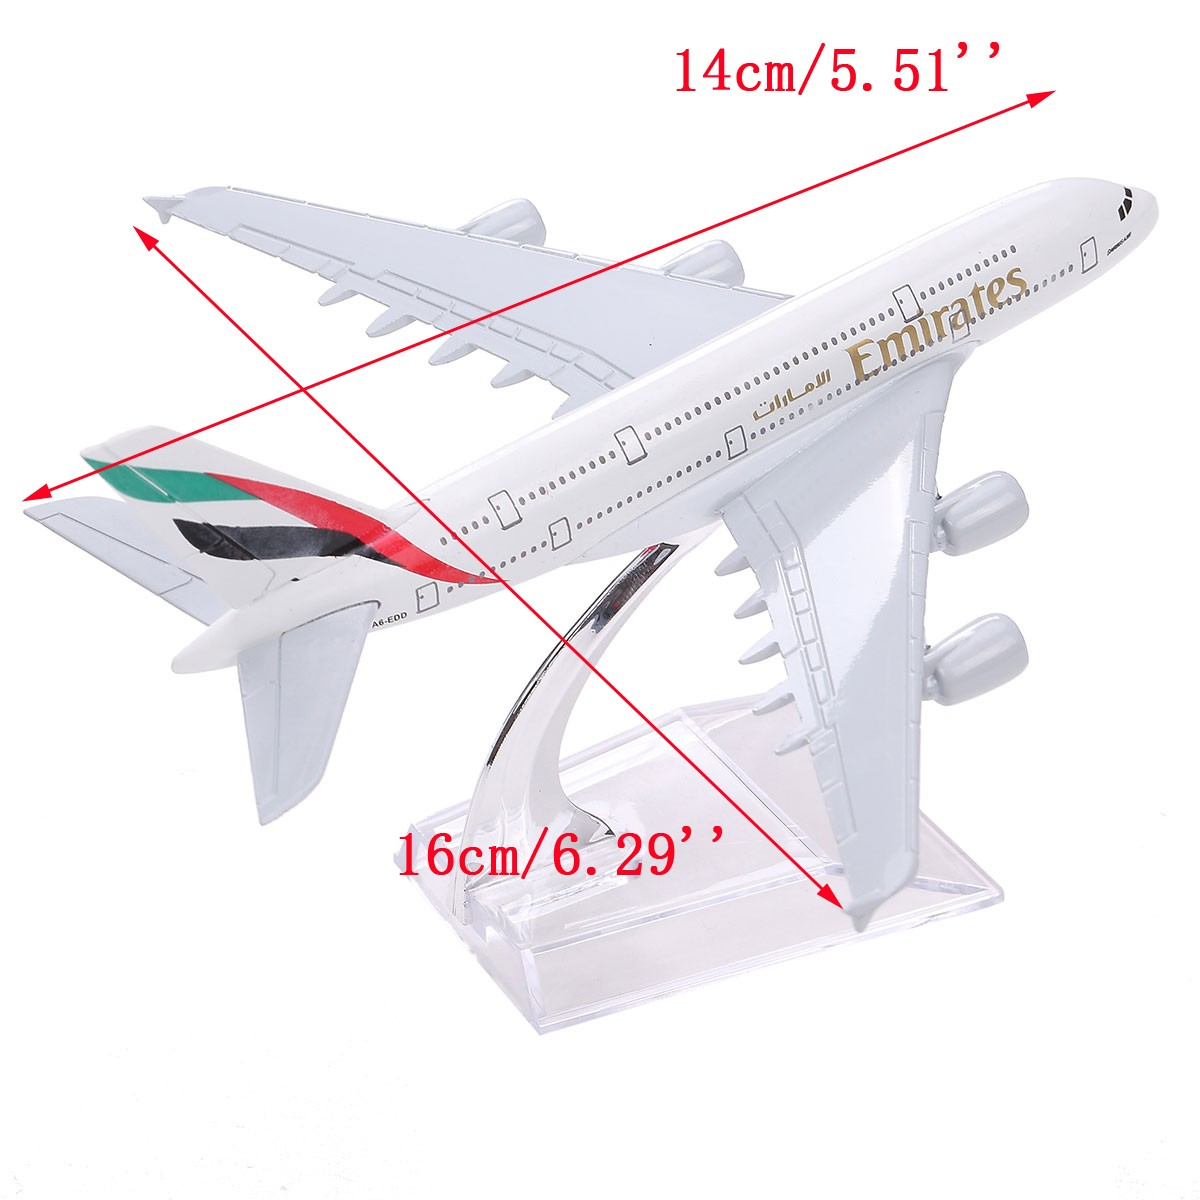 Brand New Airbus380 Emirates Airlines A-380 Aircraft Aeroplan 16cm High Simulation Diecast Model United Arab Emirates A380(China (Mainland))